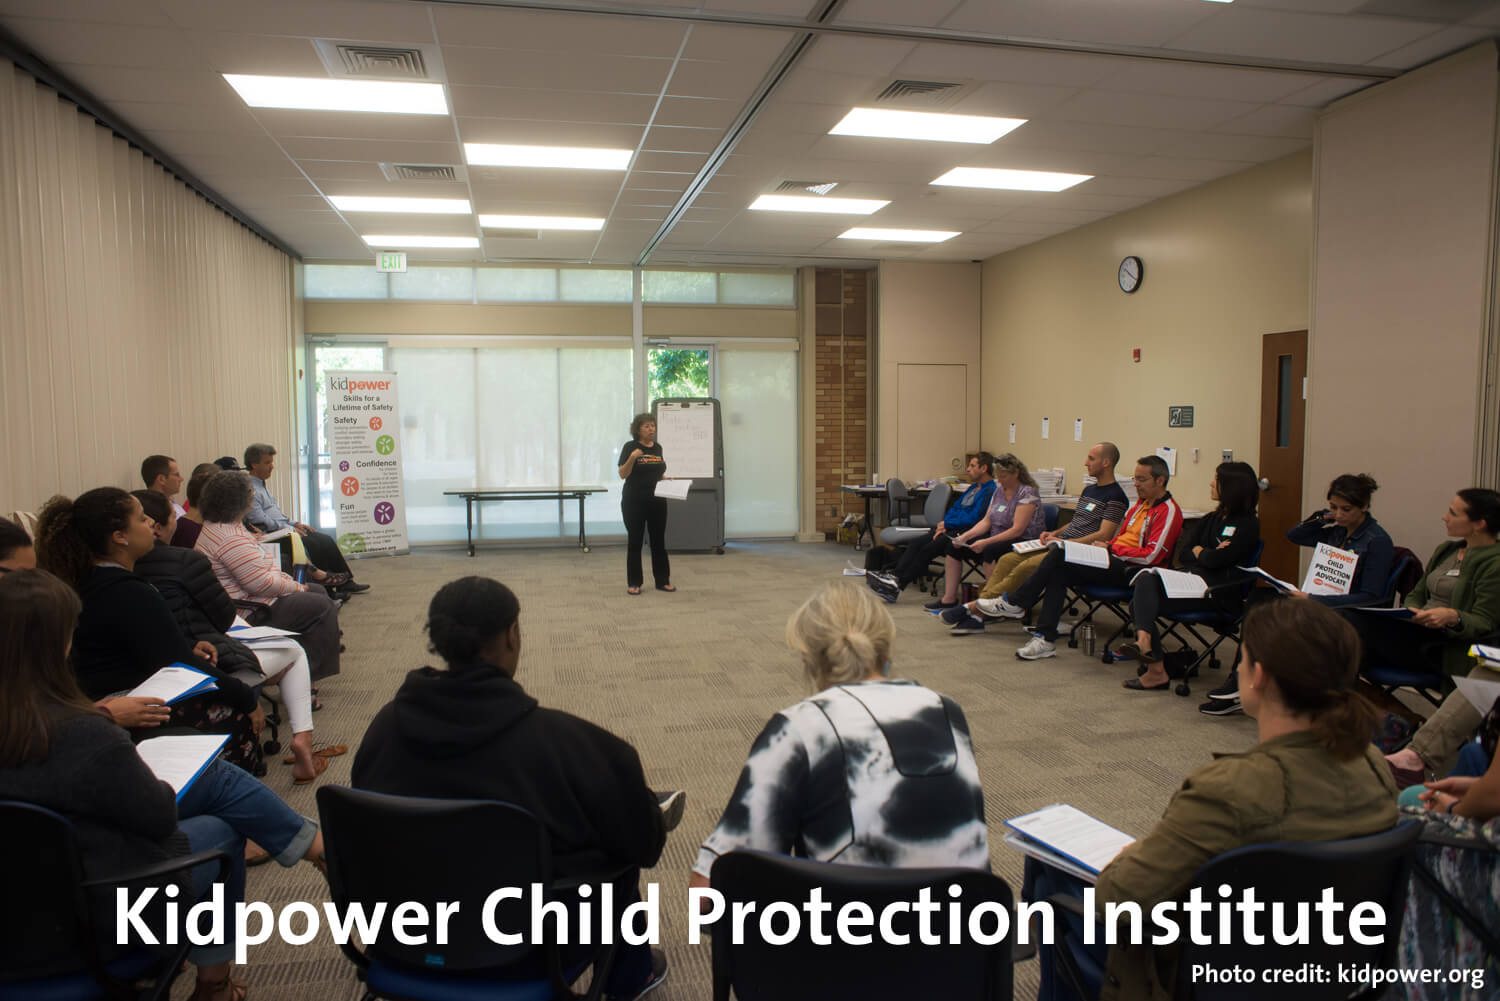 Kidpower Child Protection Institute